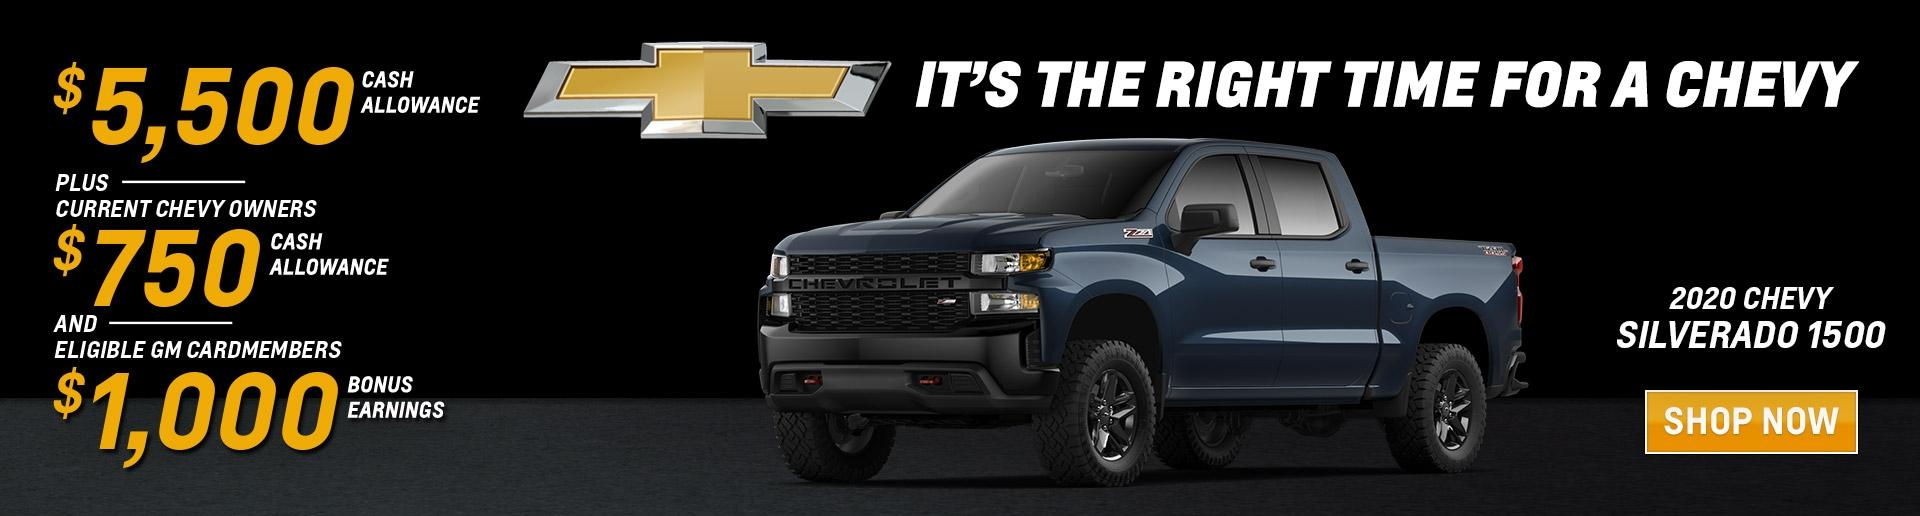 It's the Right Time for a Chevy Silverado